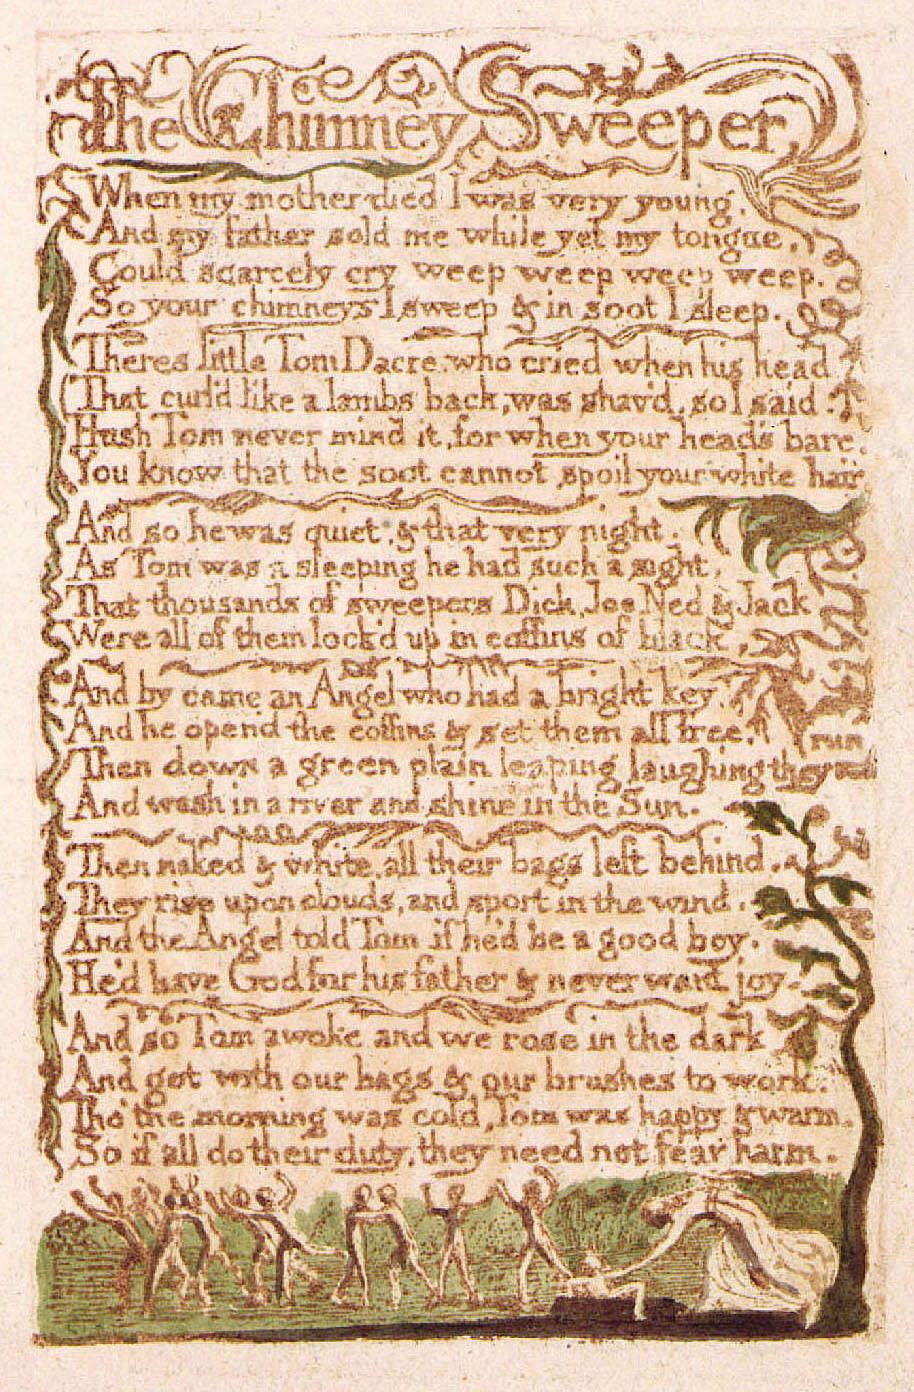 Songs_of_Innocence,_copy_B,_1789_(Library_of_Congress)_object_16_The_Chimney_Sweeper